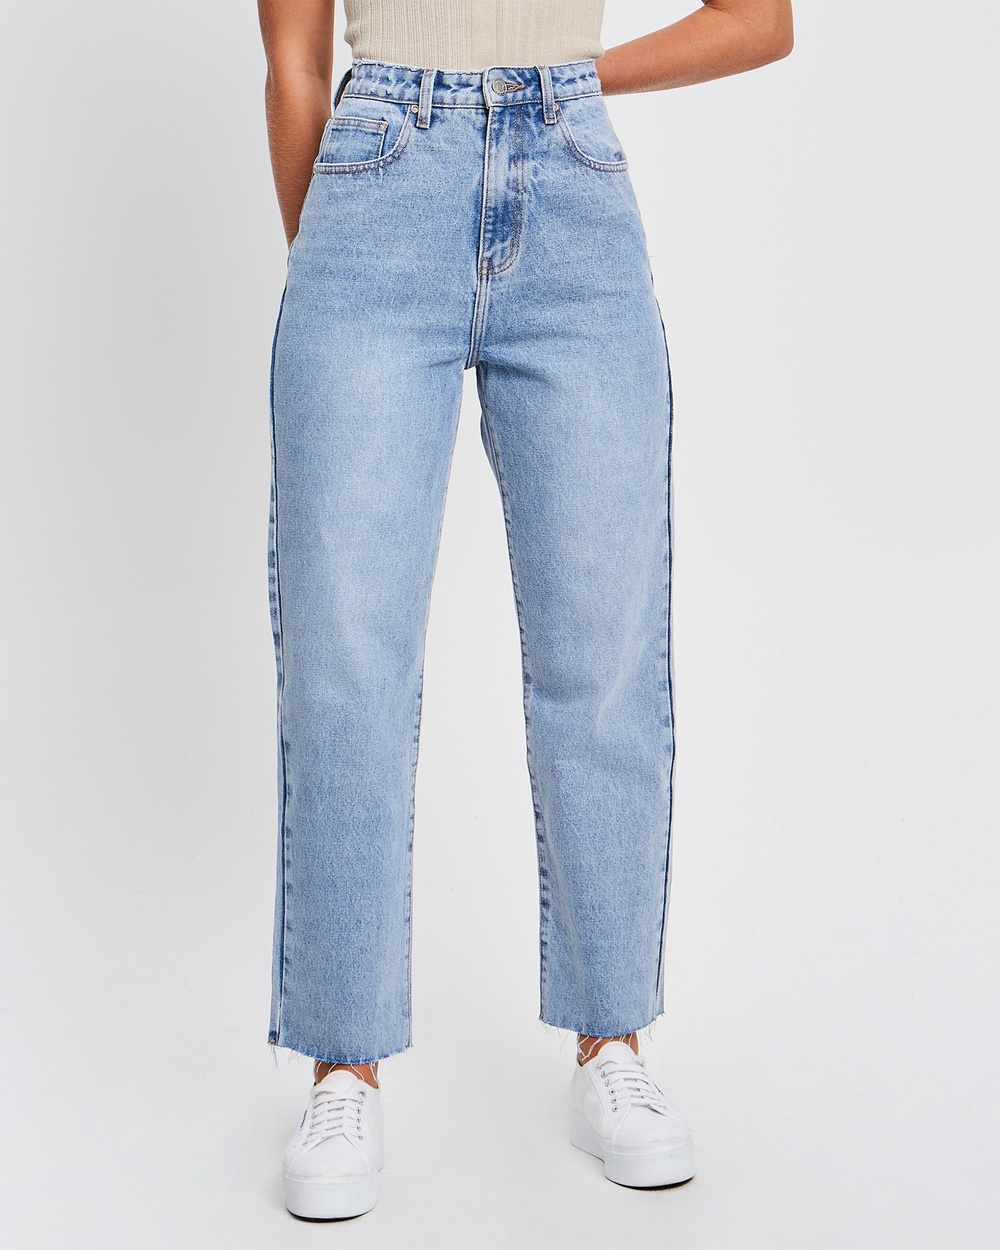 The Fated Ryan Cropped Jean Slim Light Blue Wash